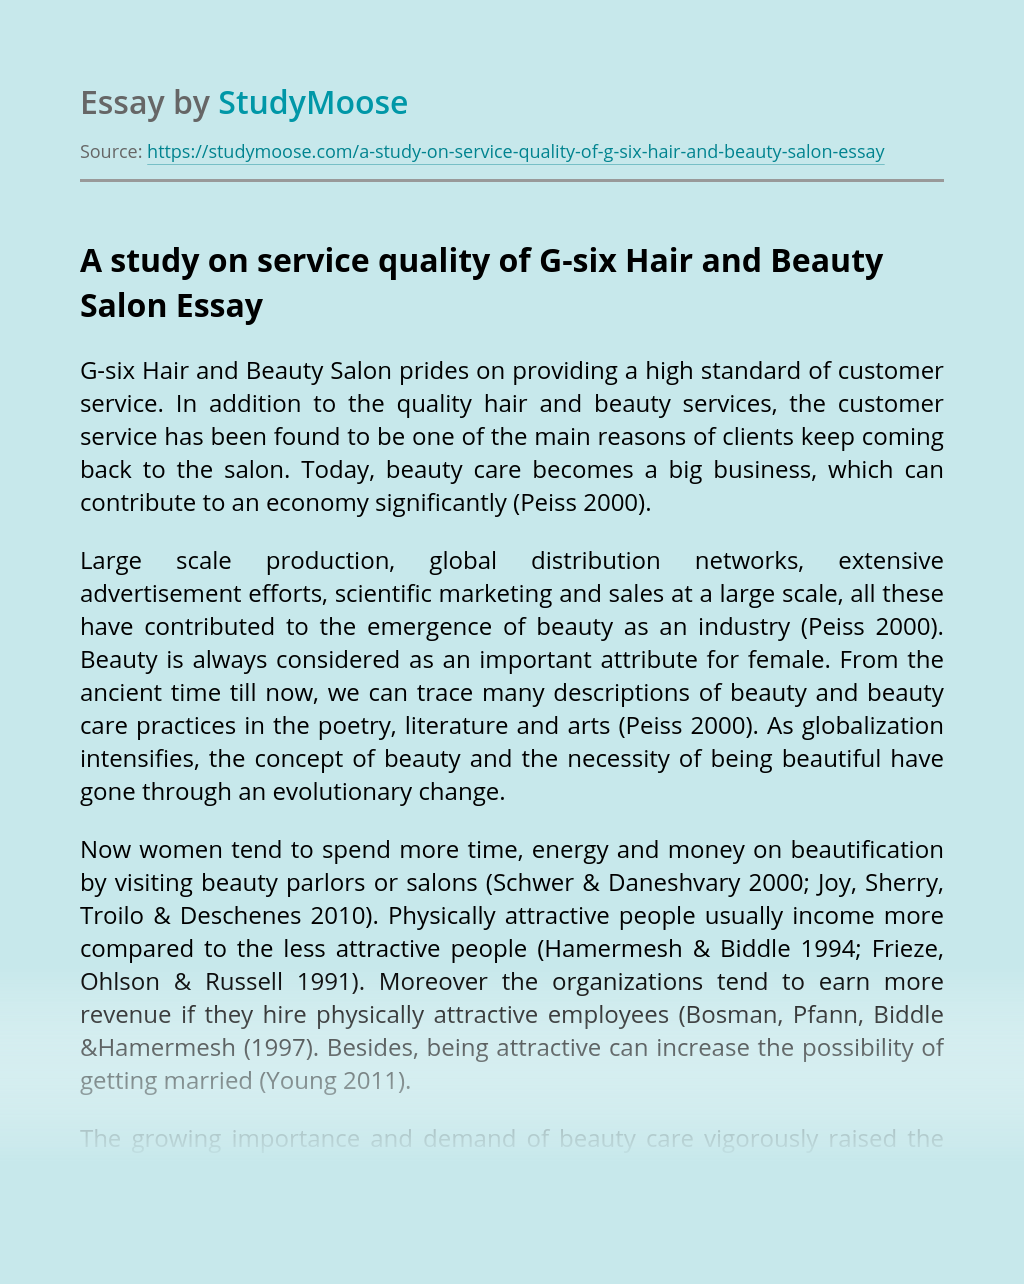 A study on service quality of G-six Hair and Beauty Salon